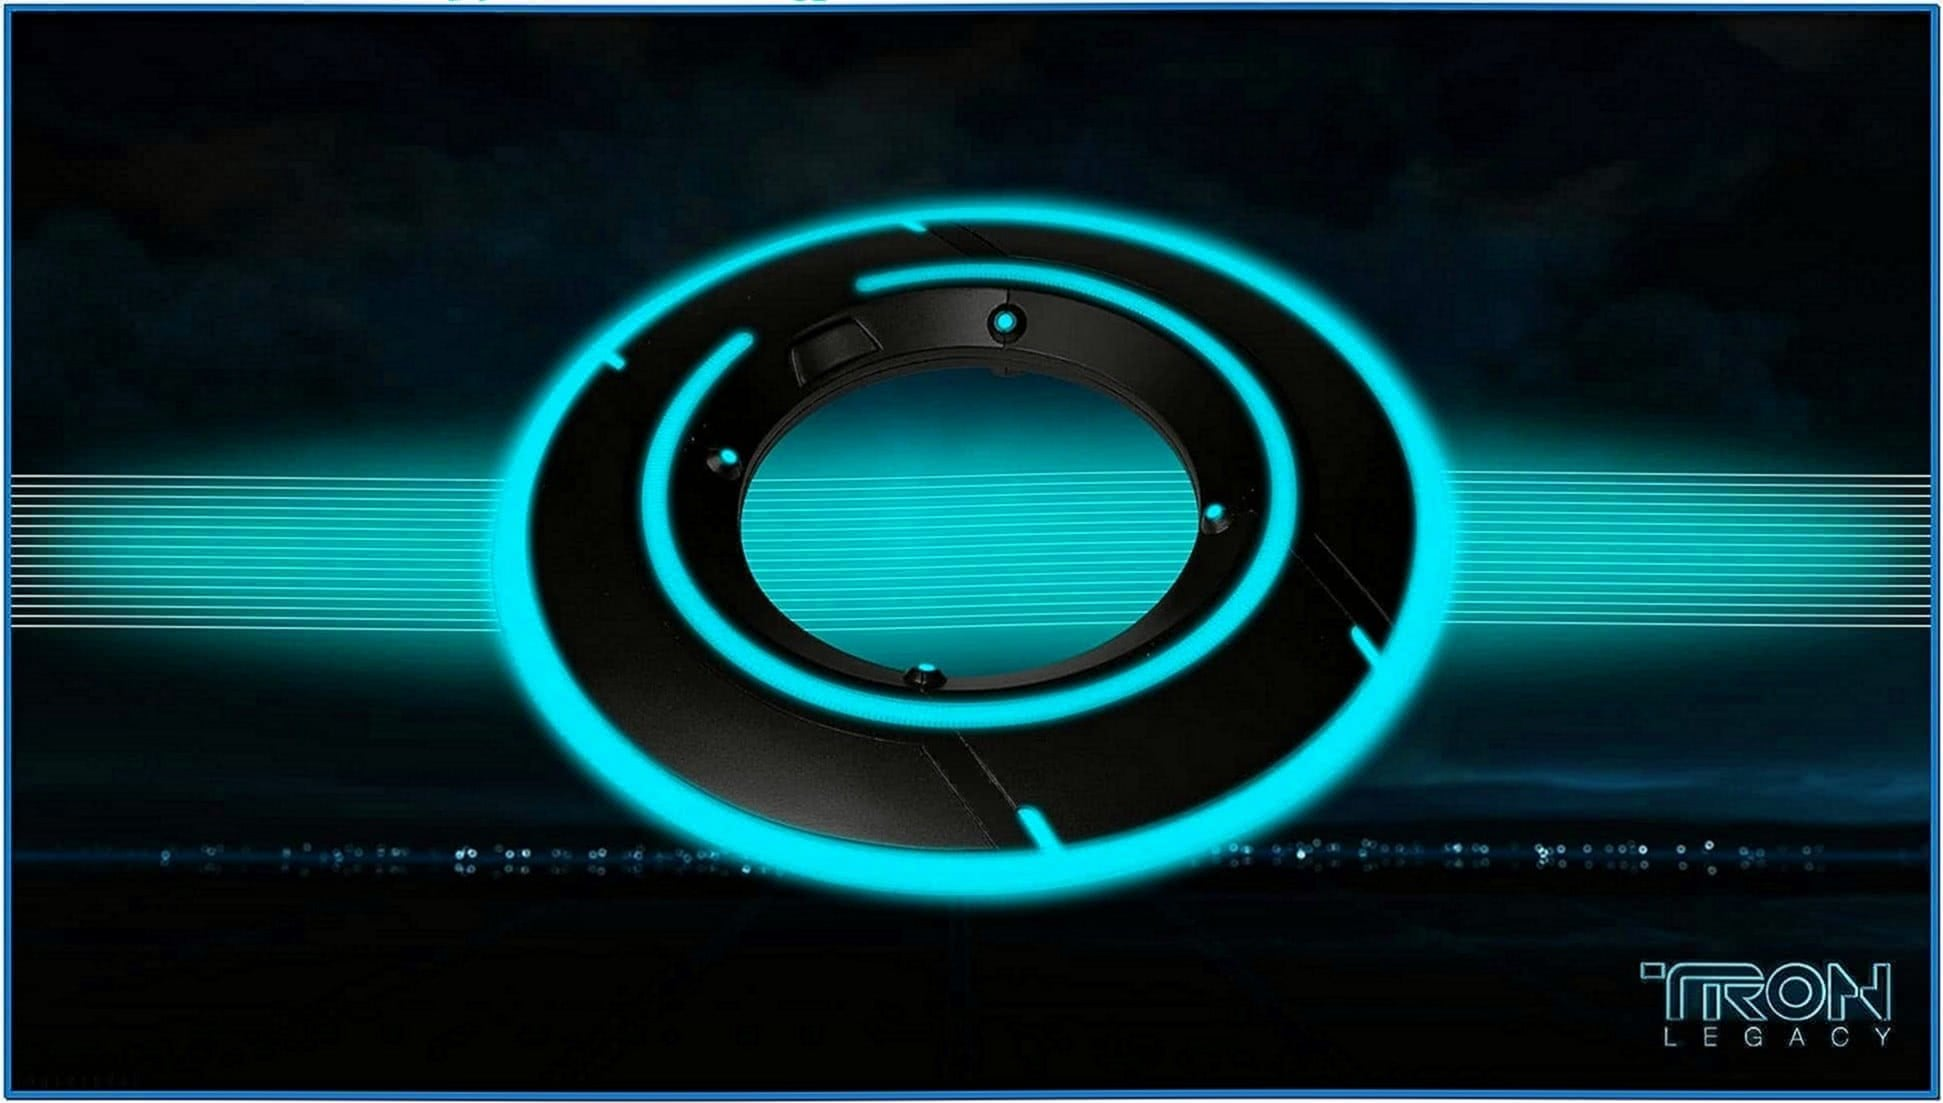 Tron Legacy Screensaver Ubuntu